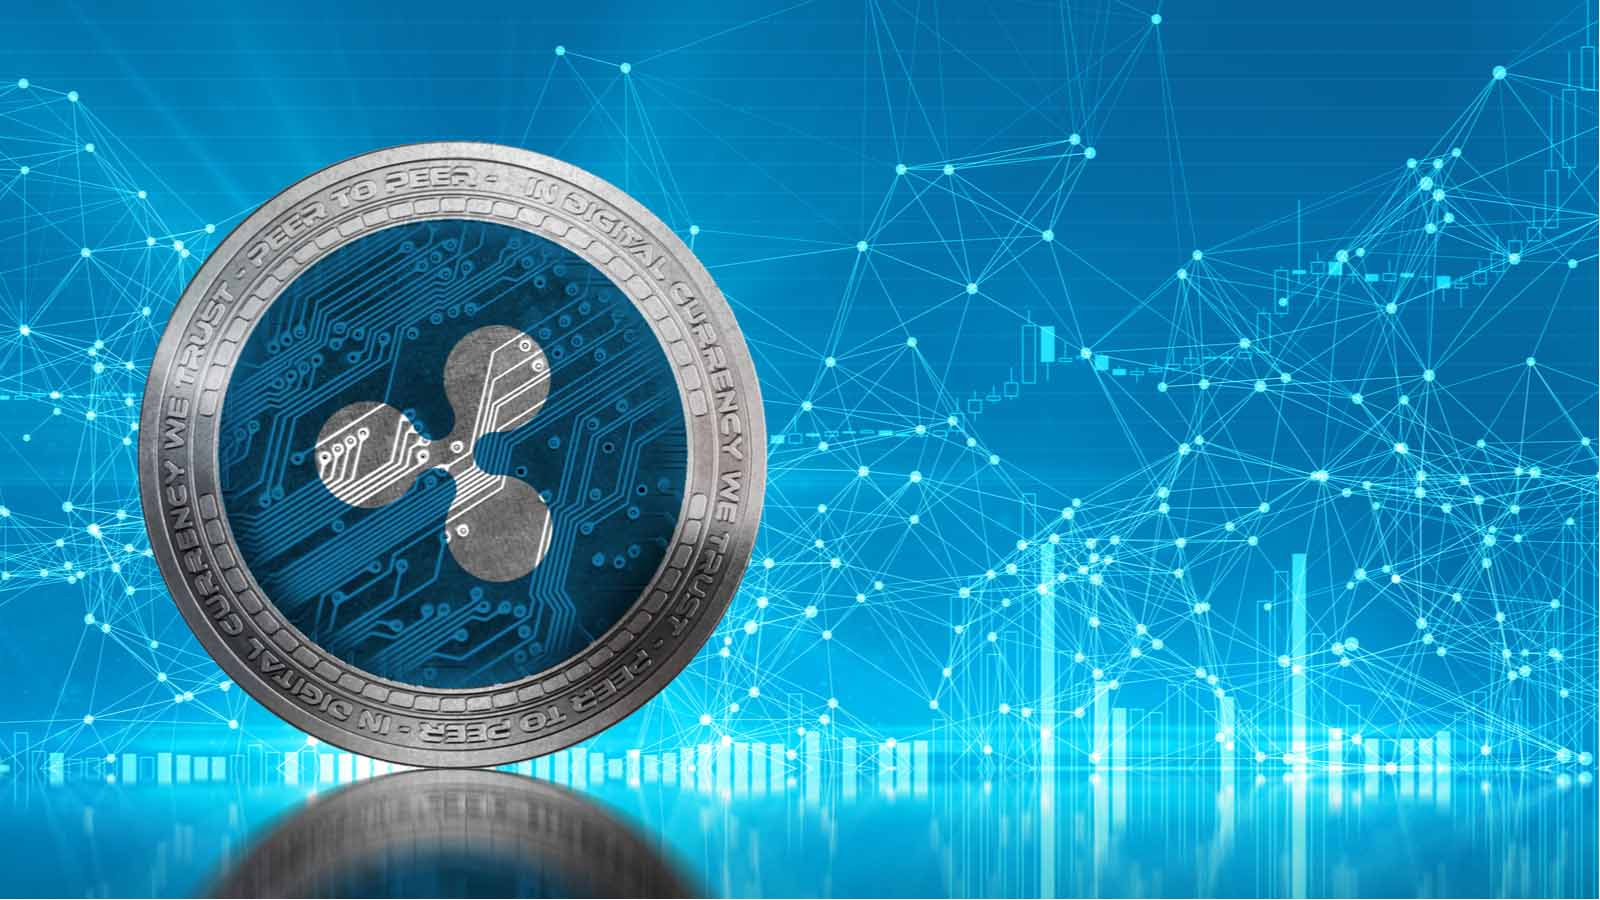 Ripple: Aiming to Upend the Global Financial System With Blockchain Tech